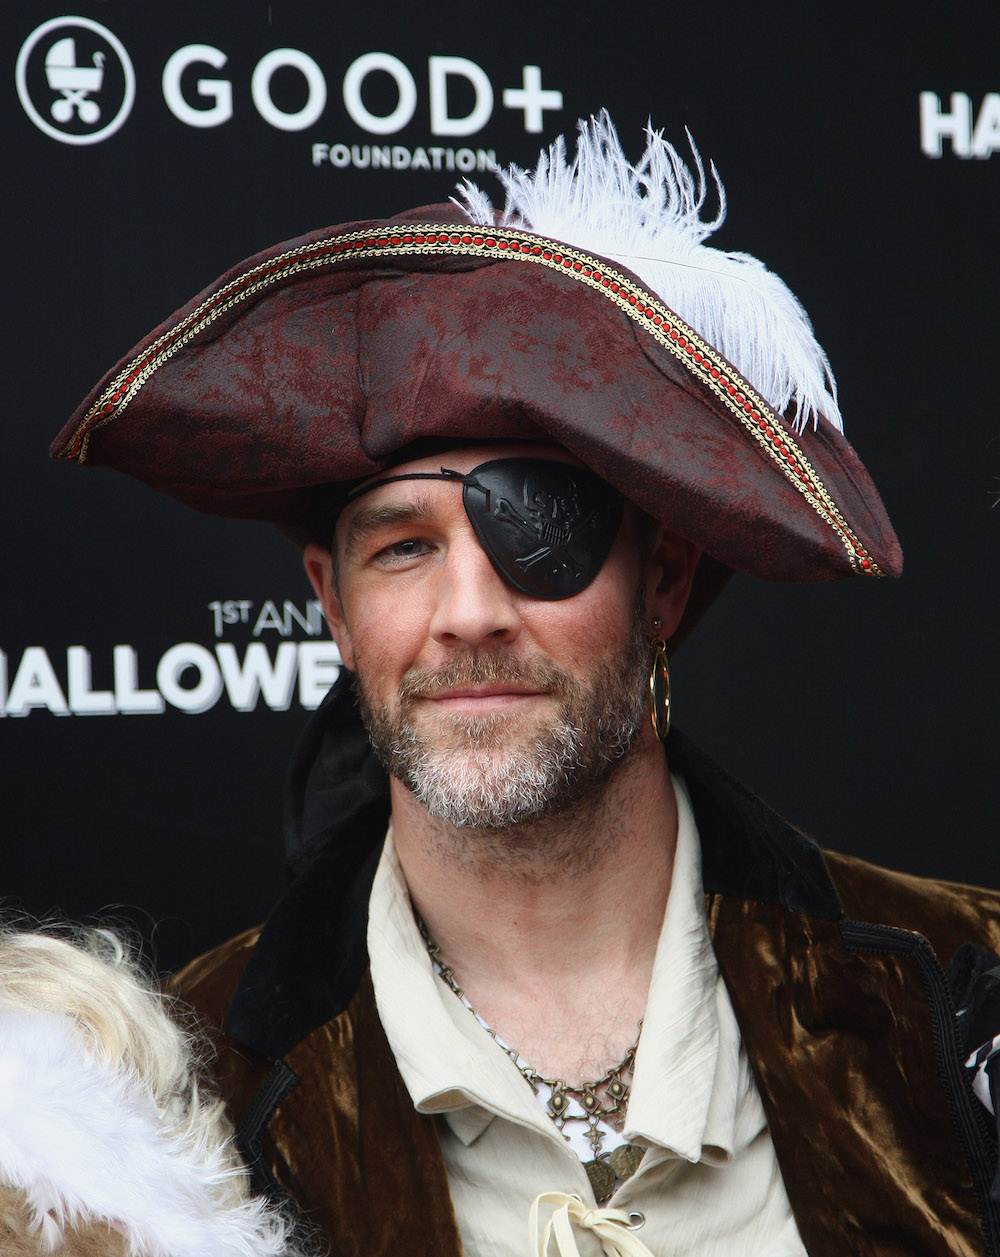 James Van Der Beek's spooky family Halloween costume is too sweet